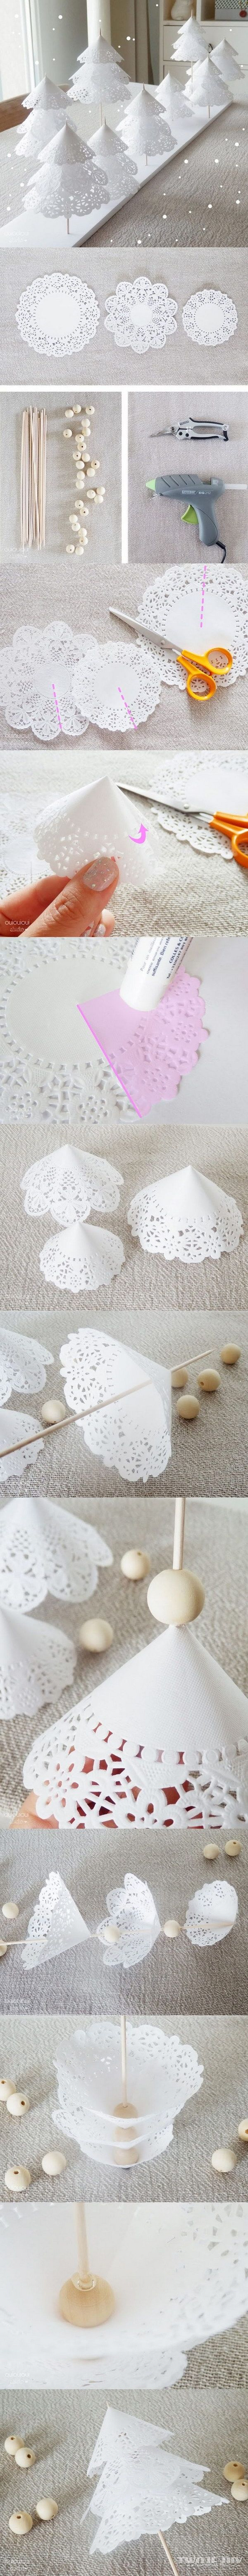 DIY Paper Doily Christmas Trees Origin: http://ouiouiouistudio.blogspot.fr/2013/12/diy-une-foret-de-sapins-en-napperons-de Need: - Paper napkins of different sizes (17, 15 and 11cm) - Skewers and wood beads (2.5 cm) 1) cut out the doilies, glue 1/4 of paper doily 2) Fold it to form a paper cone 3) Slide the smallest doily on a skewer, put a wooden bead, then repeat twice more 4) Hot glue the last bead 5) Cut the skewers at different heights. Stick them on a foam board to create your forest